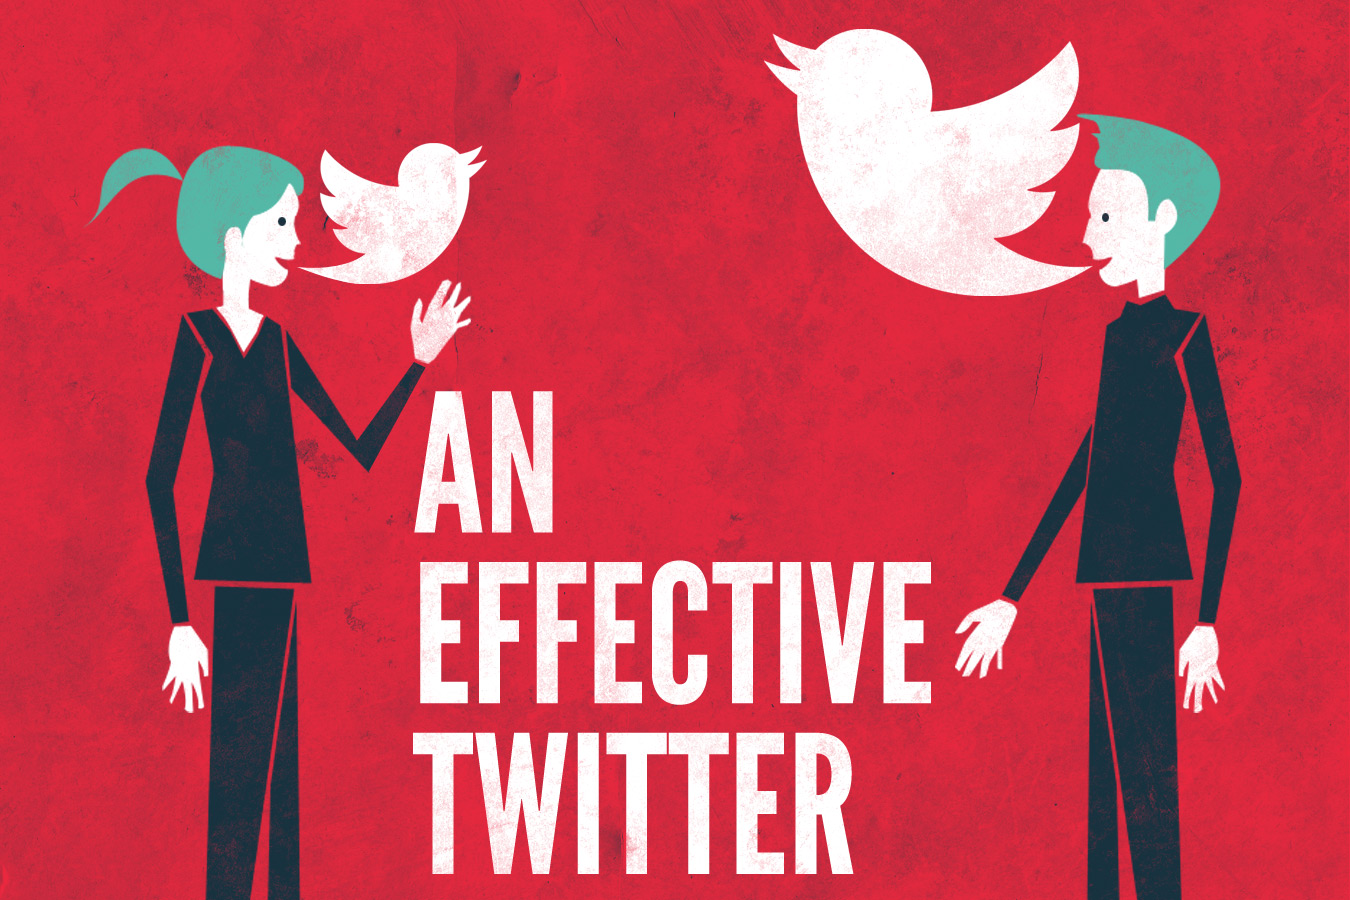 Use Twitter as an Effective Marketing Tool